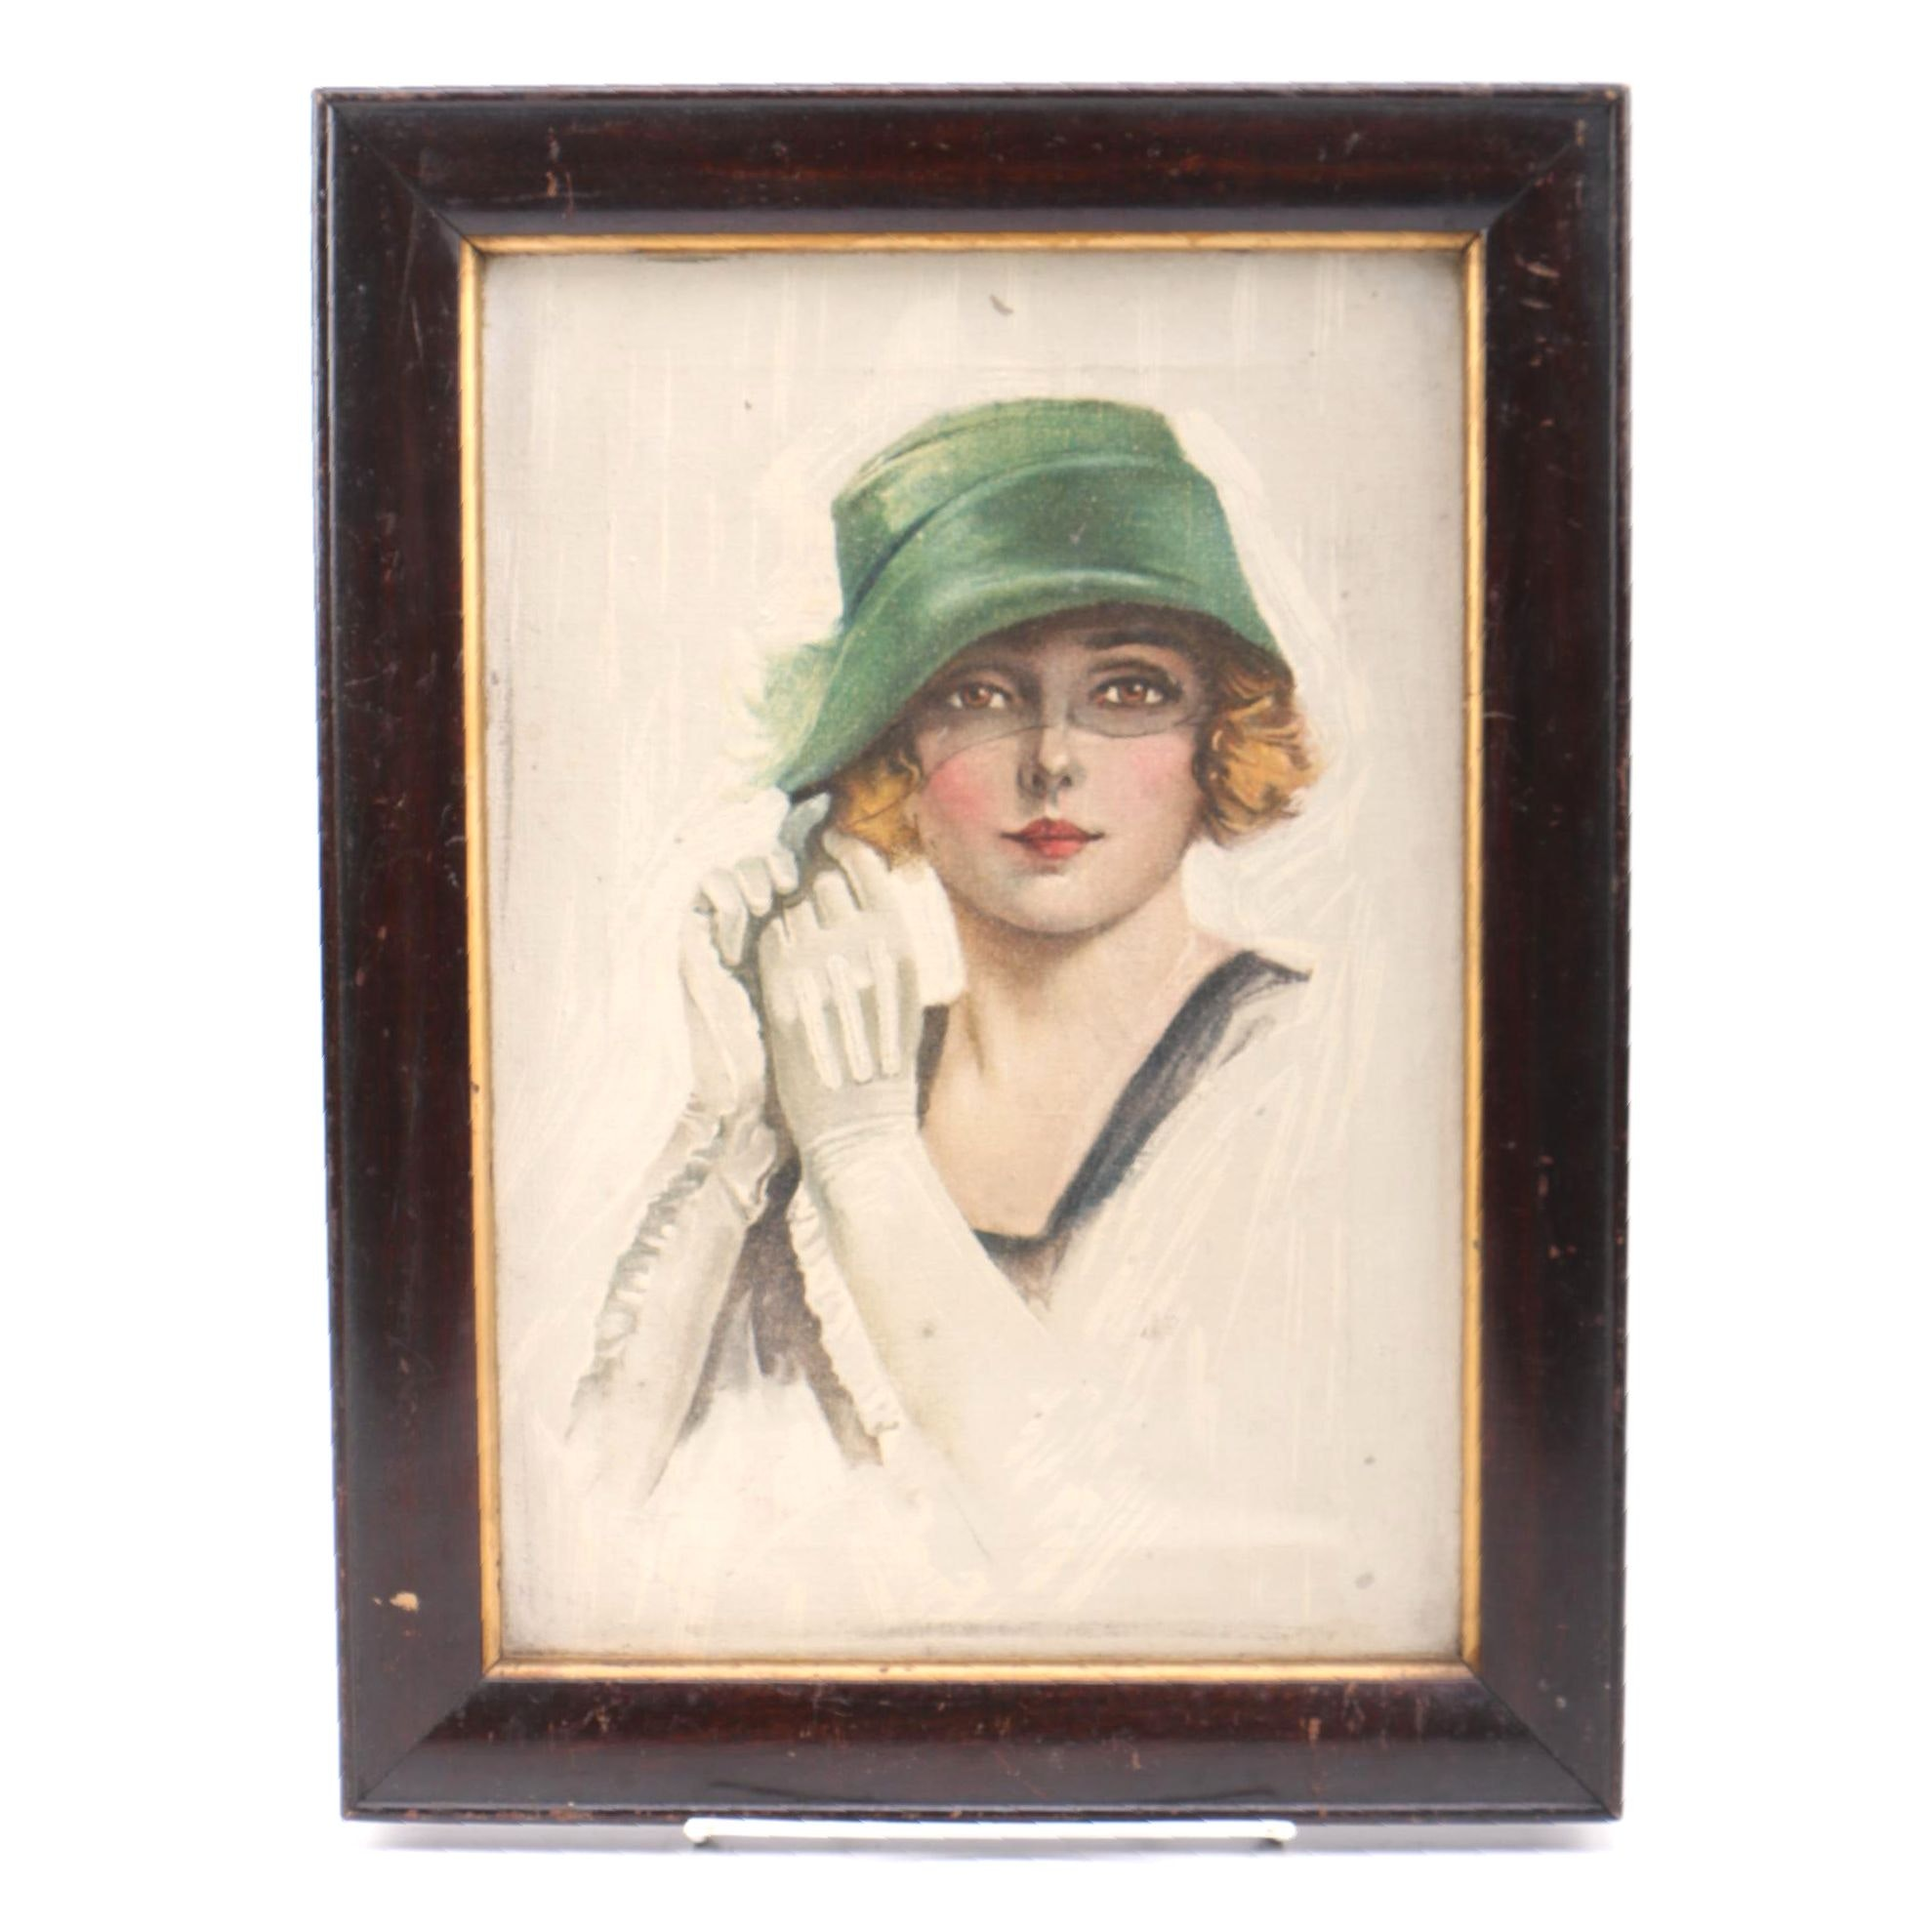 Oil on Canvas Portrait of a Woman with Green Hat